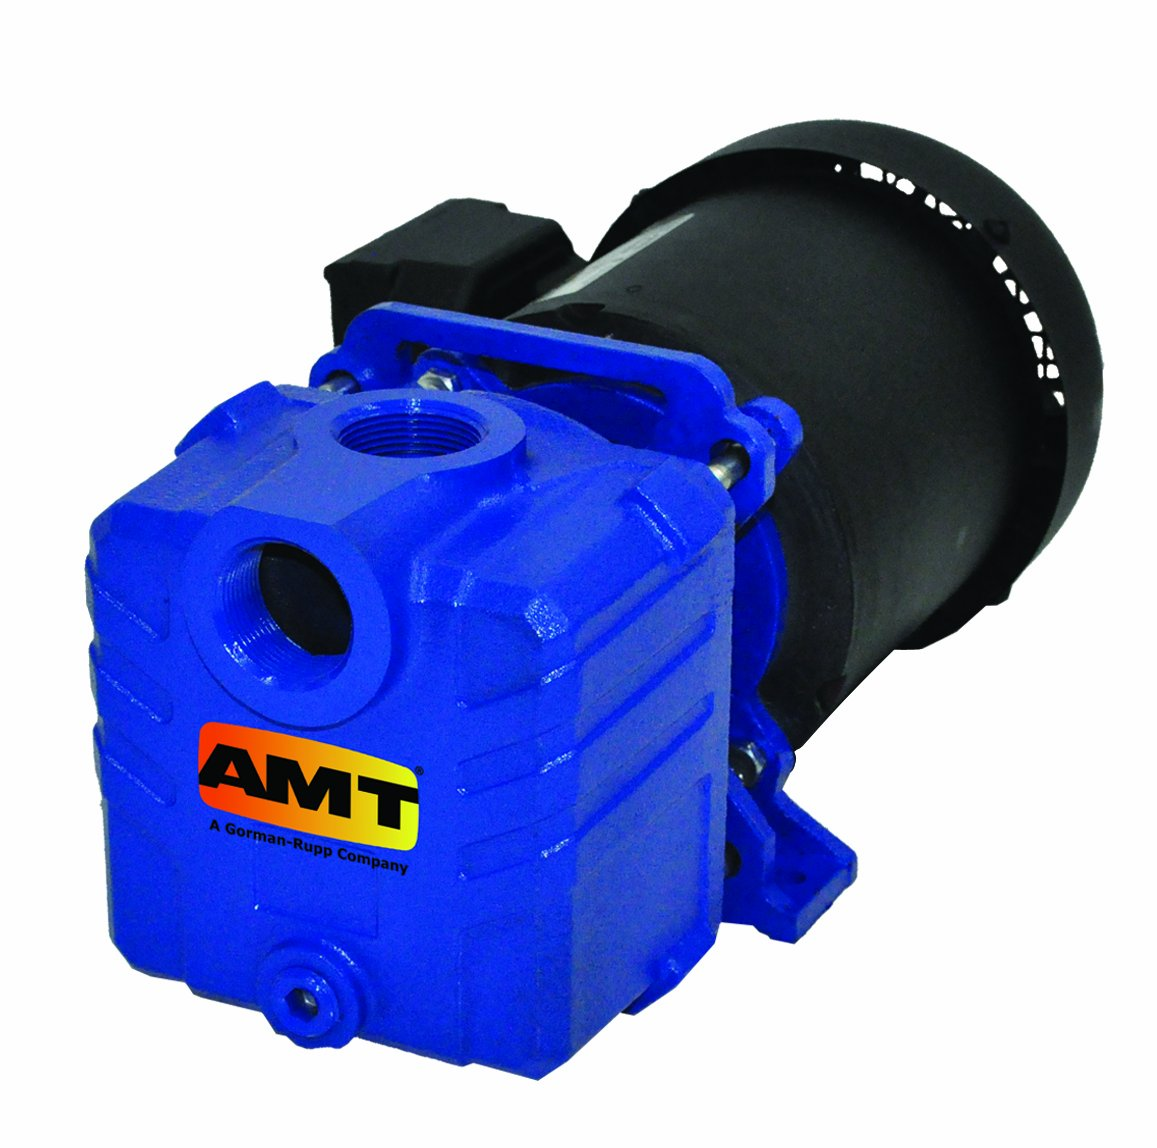 AMT Pump 285E-95 Self-Priming Centrifugal Pump, Cast Iron, 1/2 HP, 1 Phase, 115/230 V, Curve A, 1'' NPT Female Suction & Discharge Ports